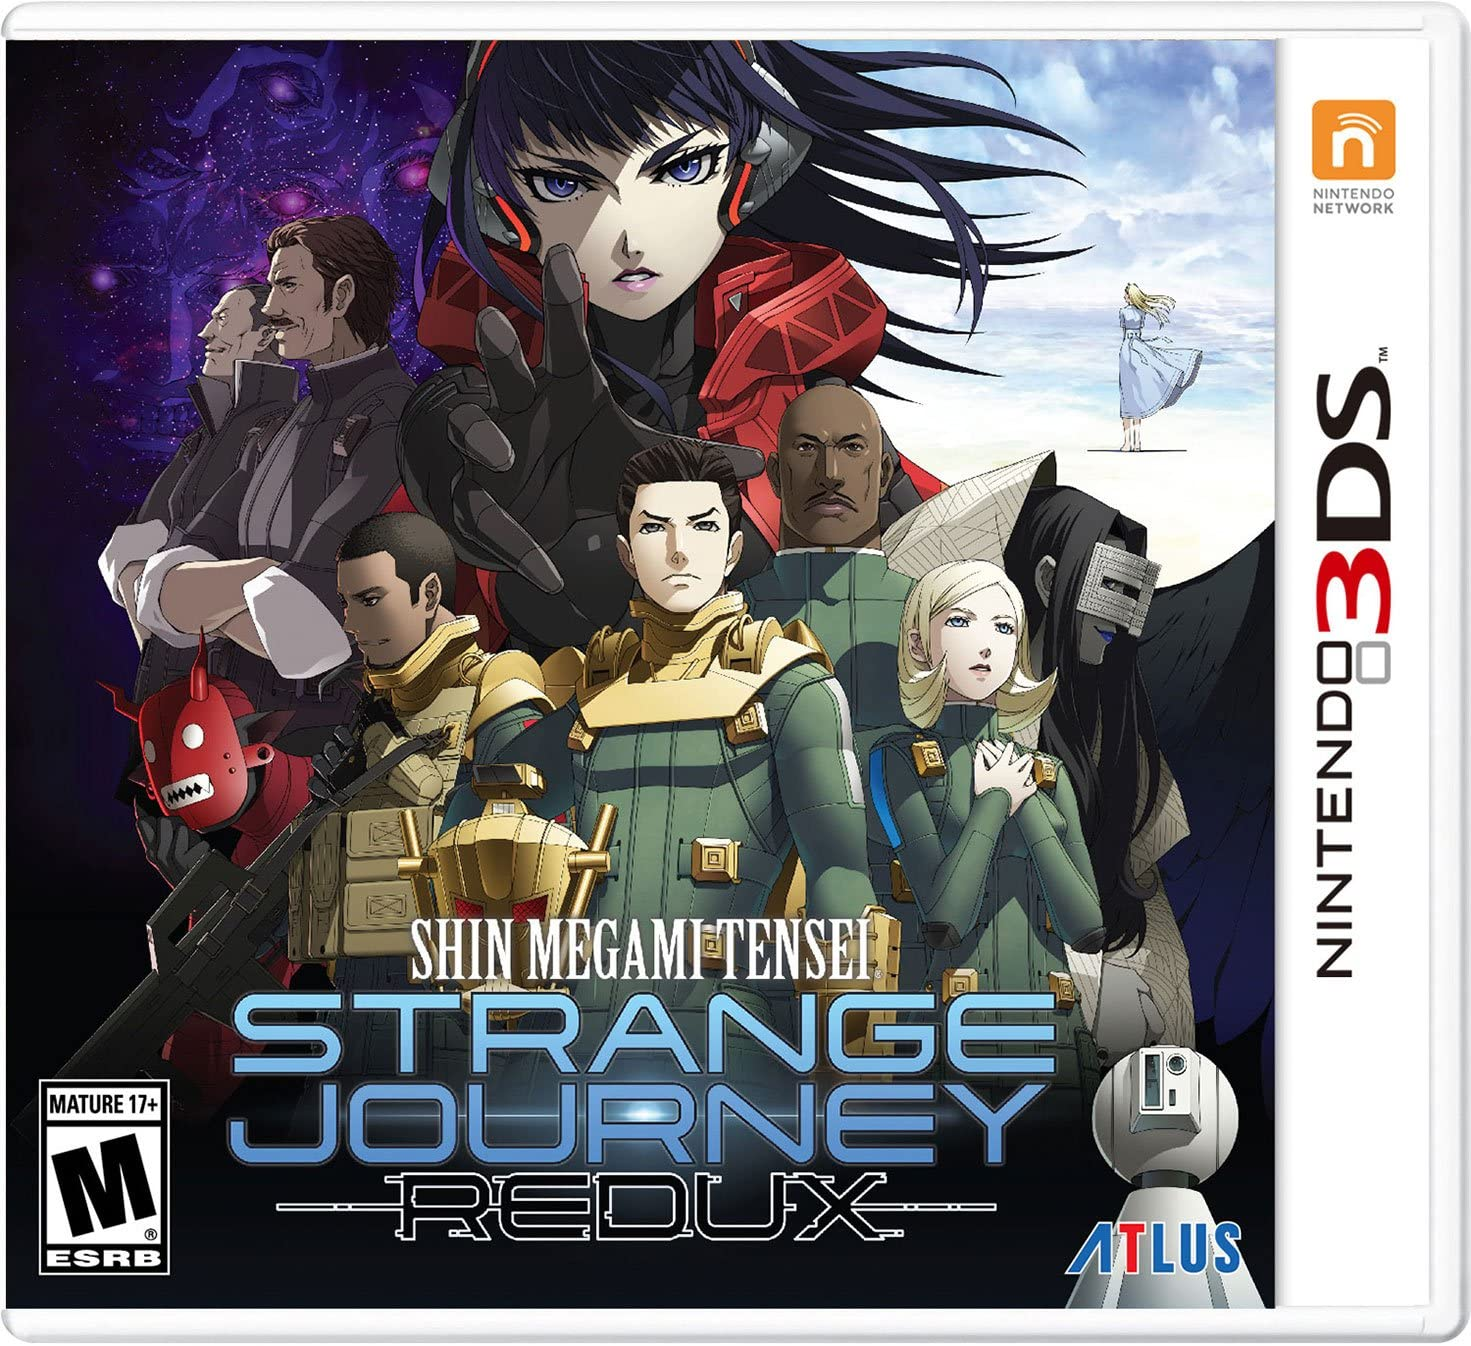 Image result for Shin Megami Tensei Strange Journey Redux